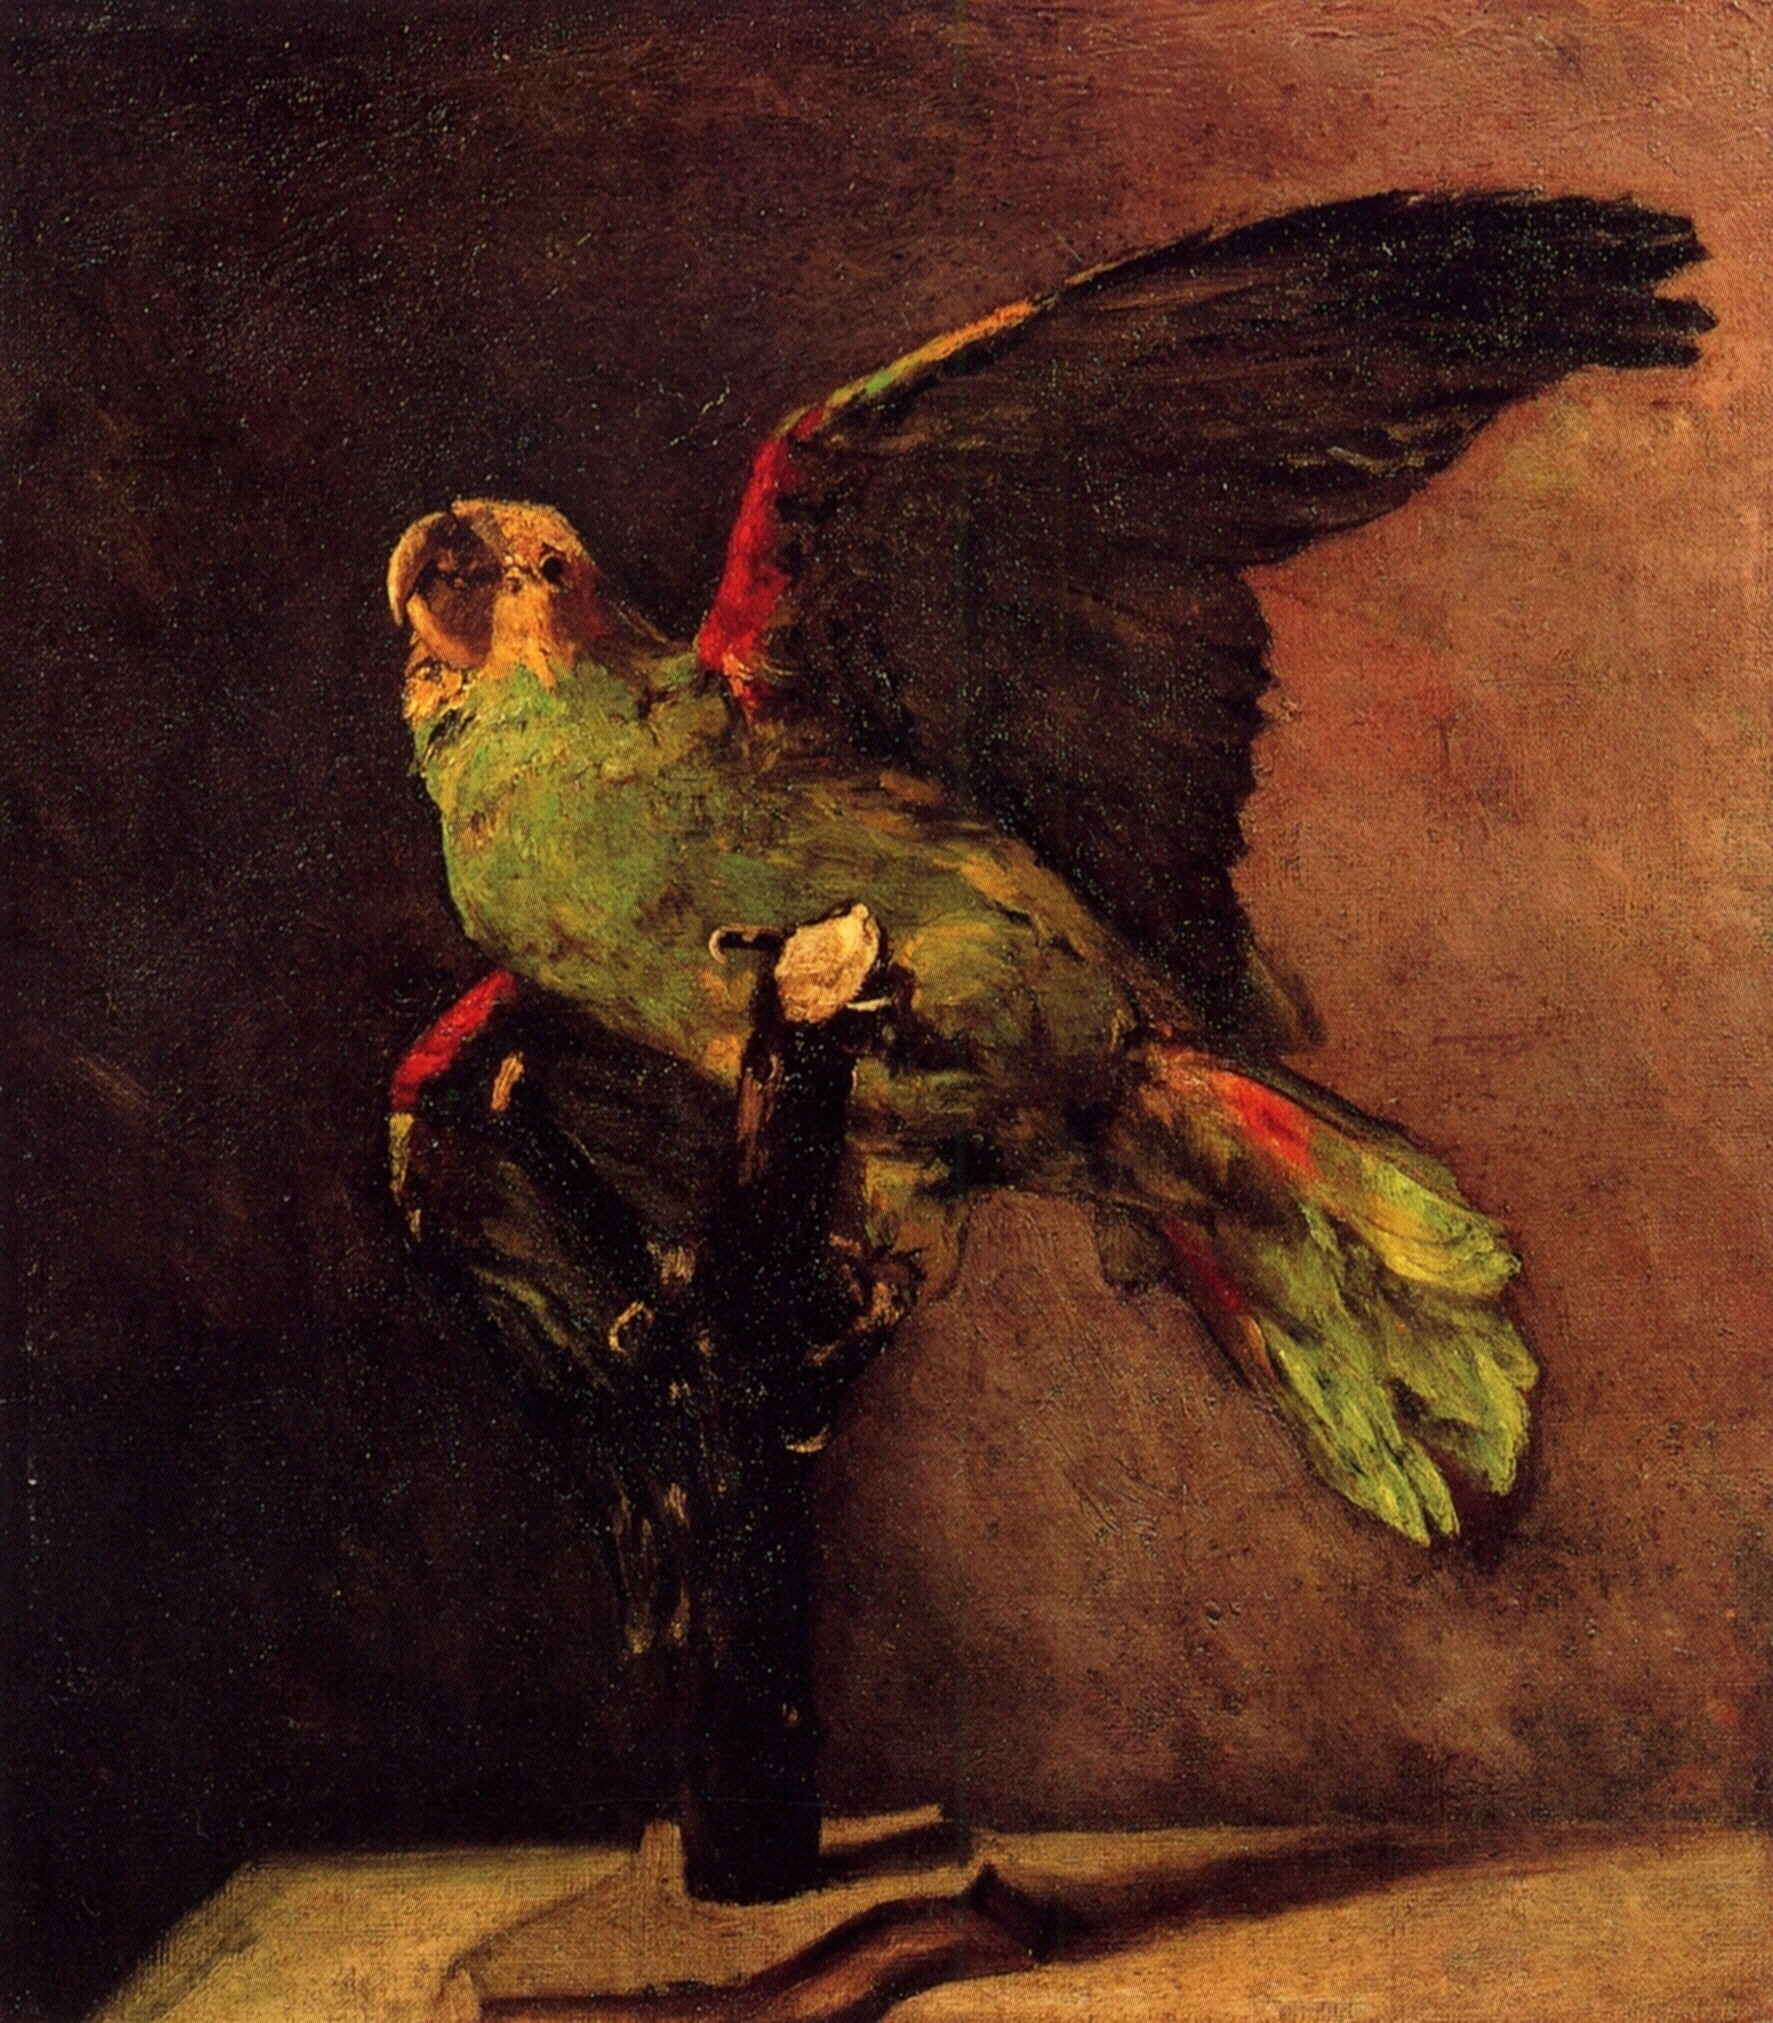 Originally Poe envisioned a parrot, not a raven